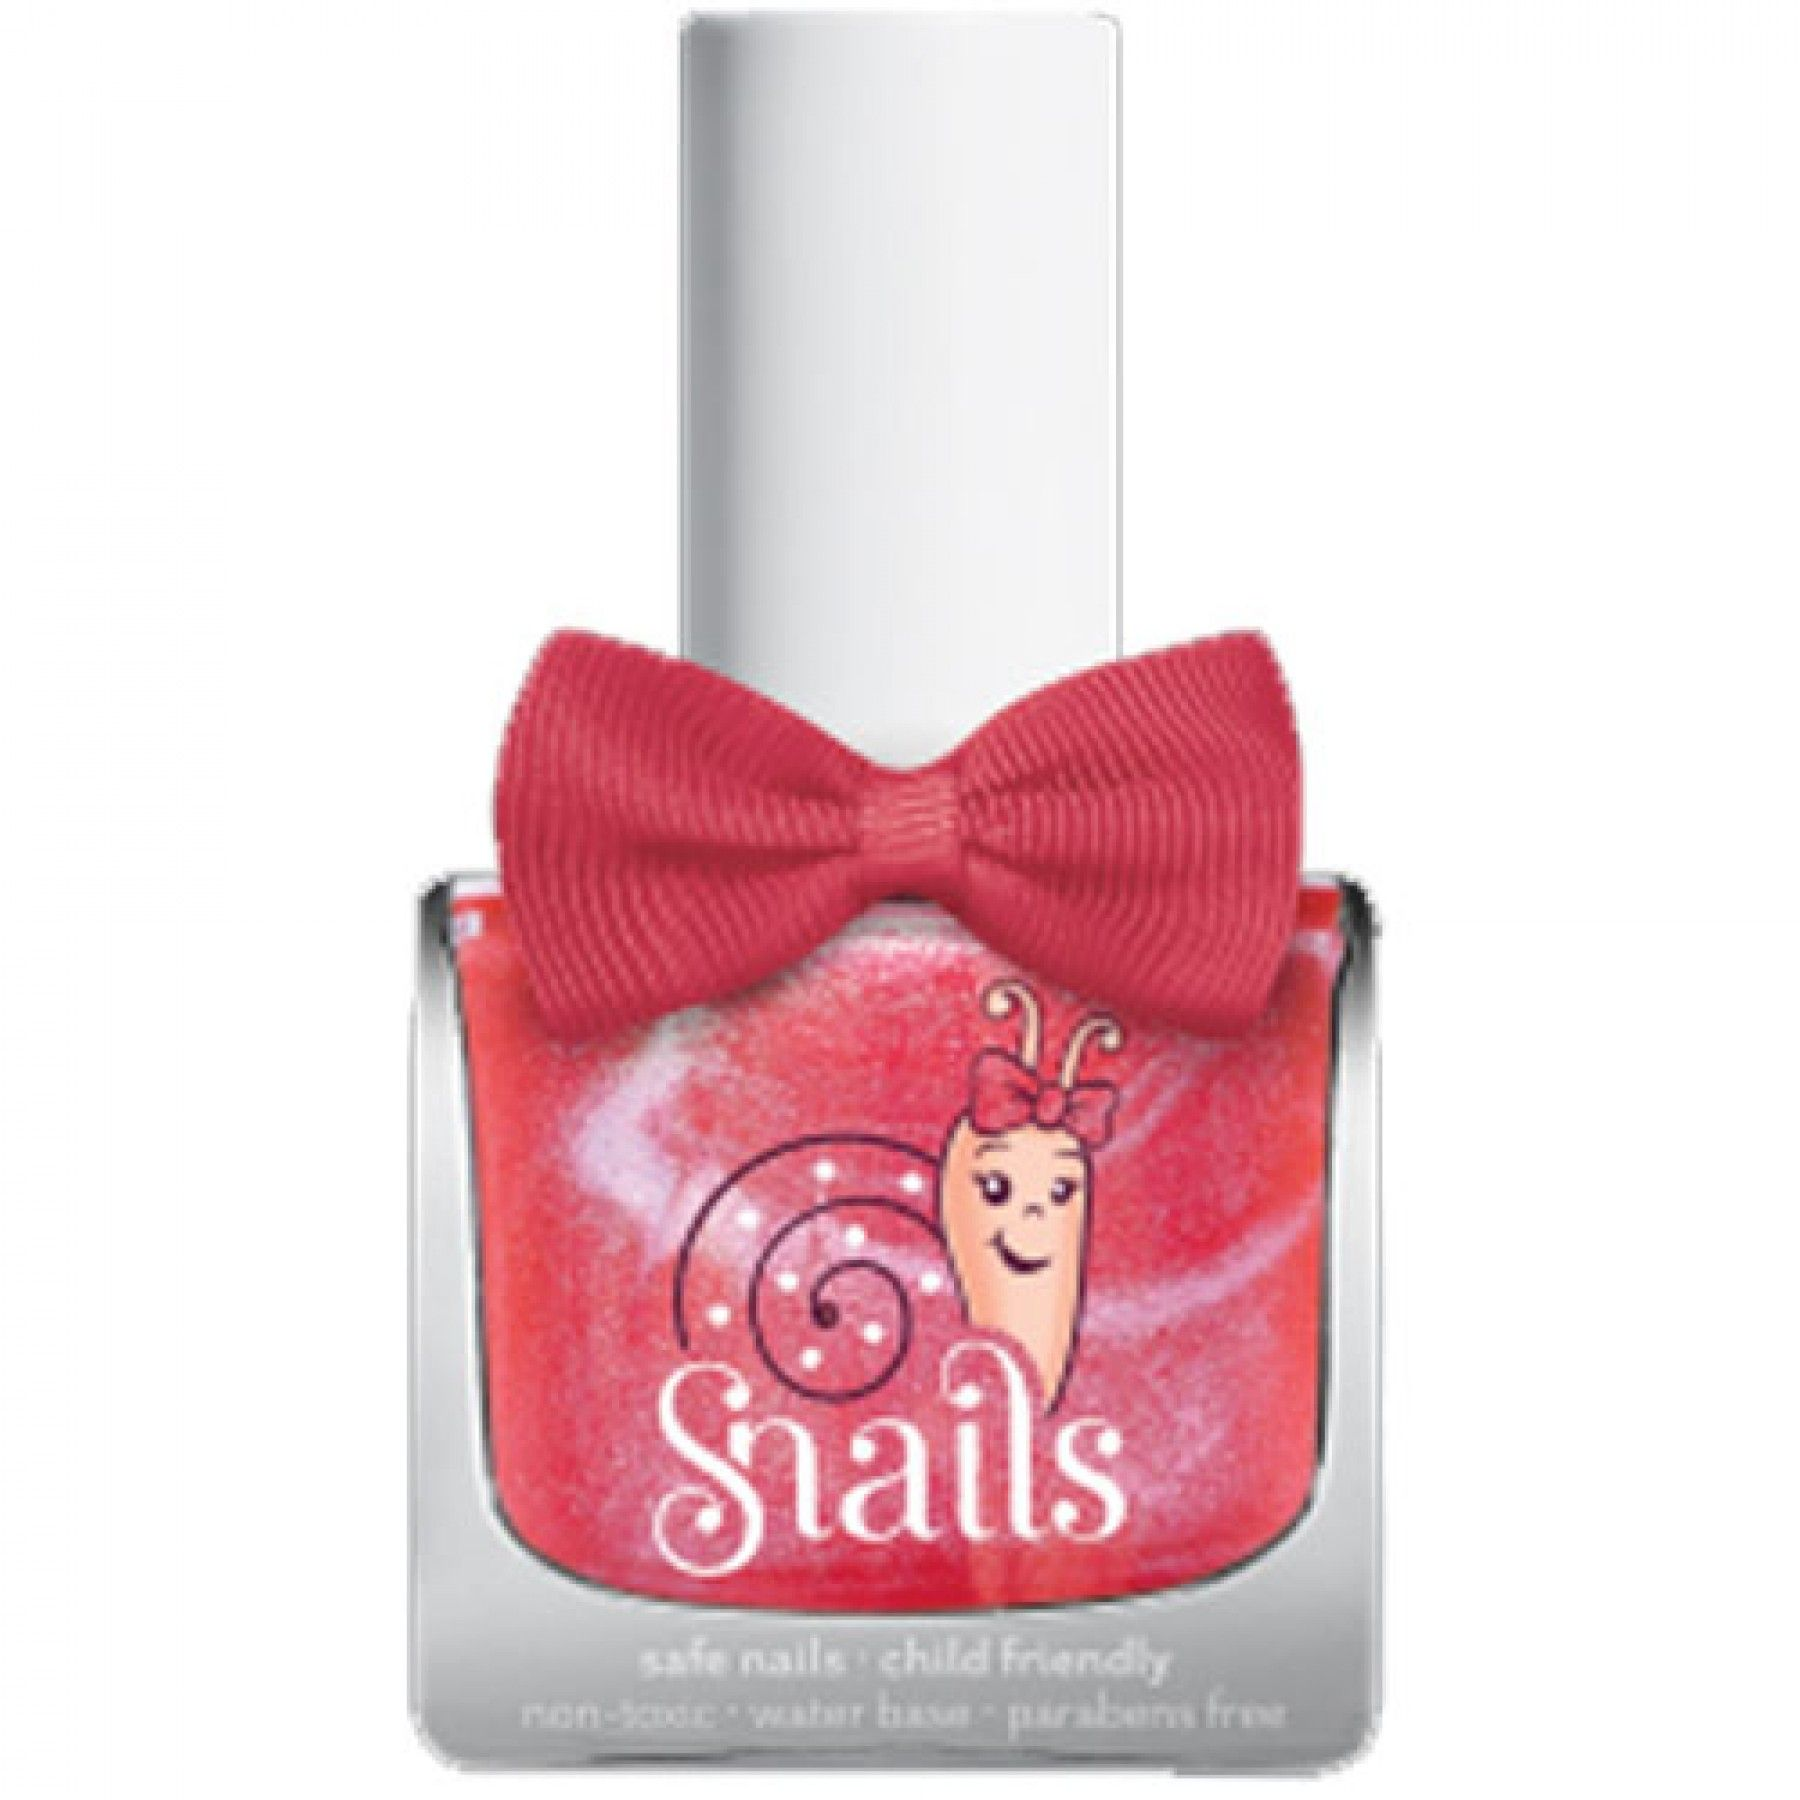 safe 'n' beautiful snails nagellak - disco girl | ilovespeelgoed.nl